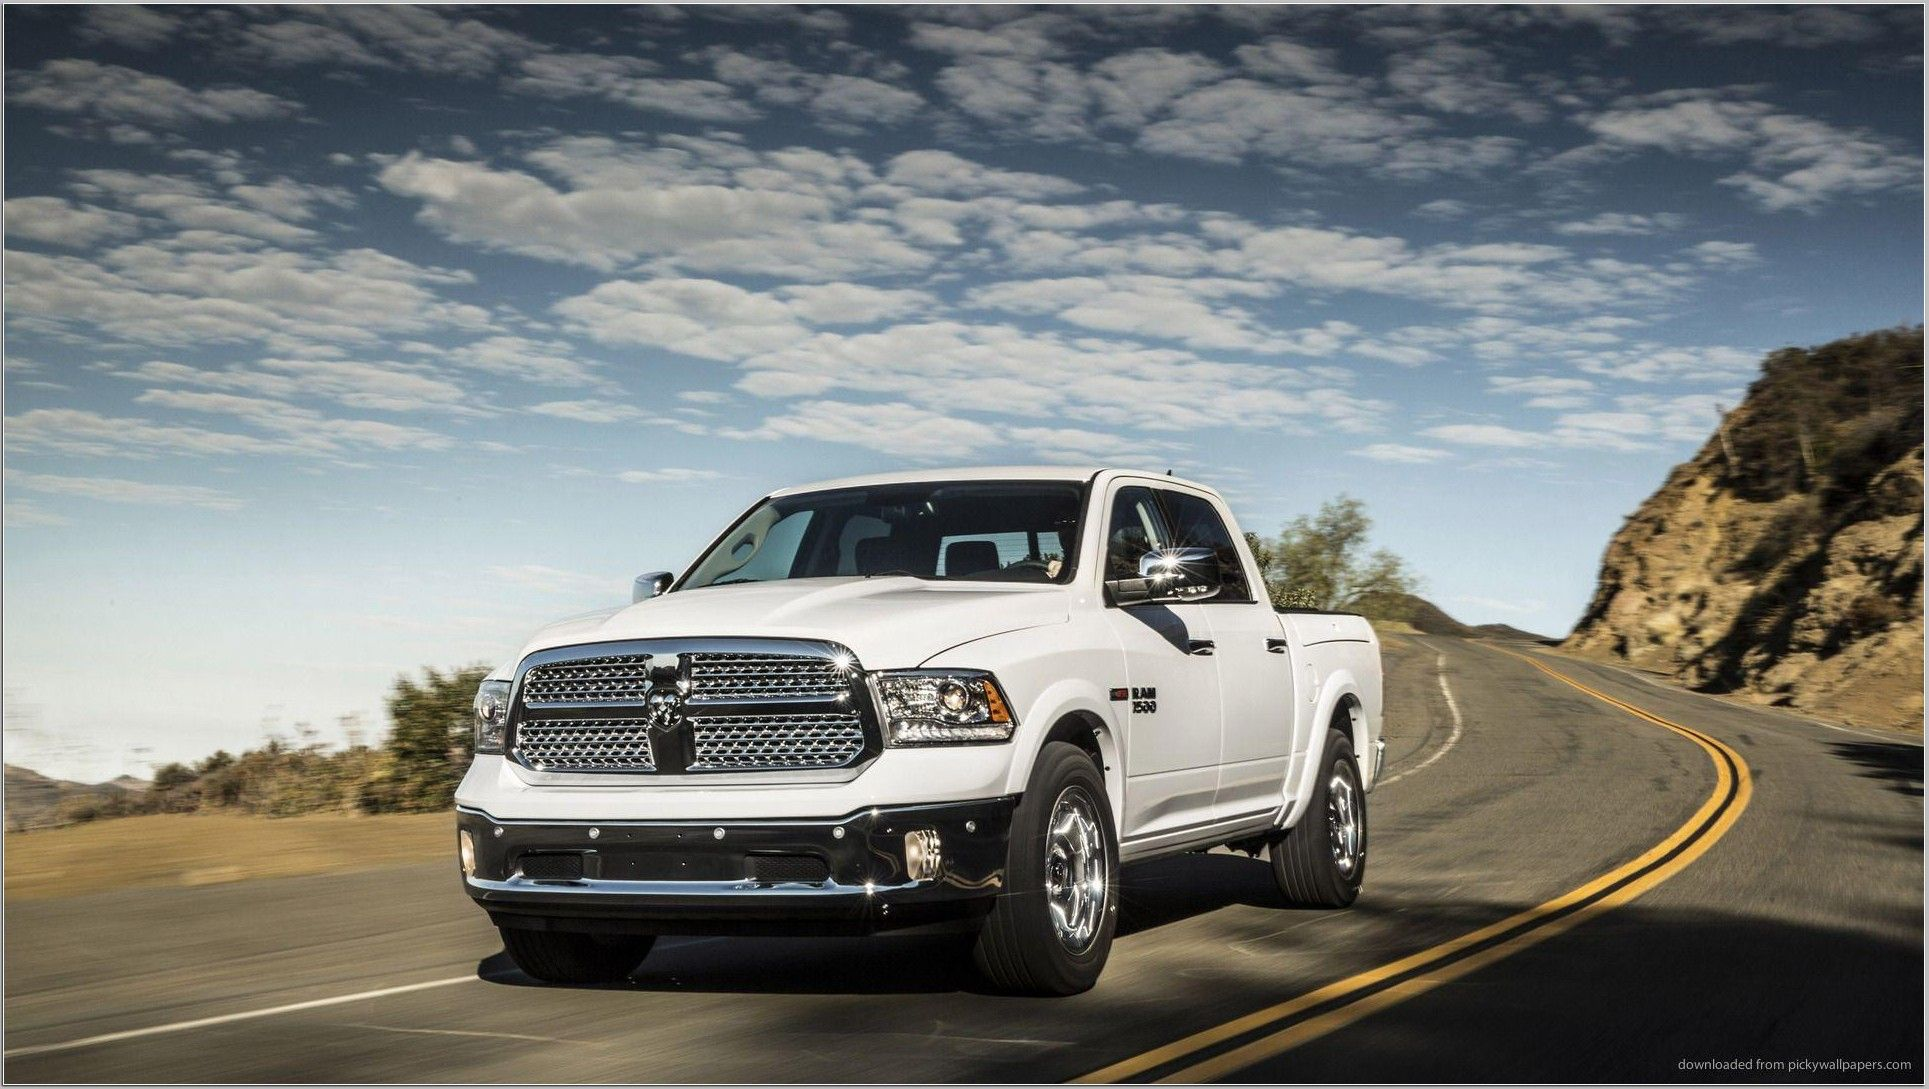 Dodge Ram Wallpapers Top Free Dodge Ram Backgrounds Wallpaperaccess